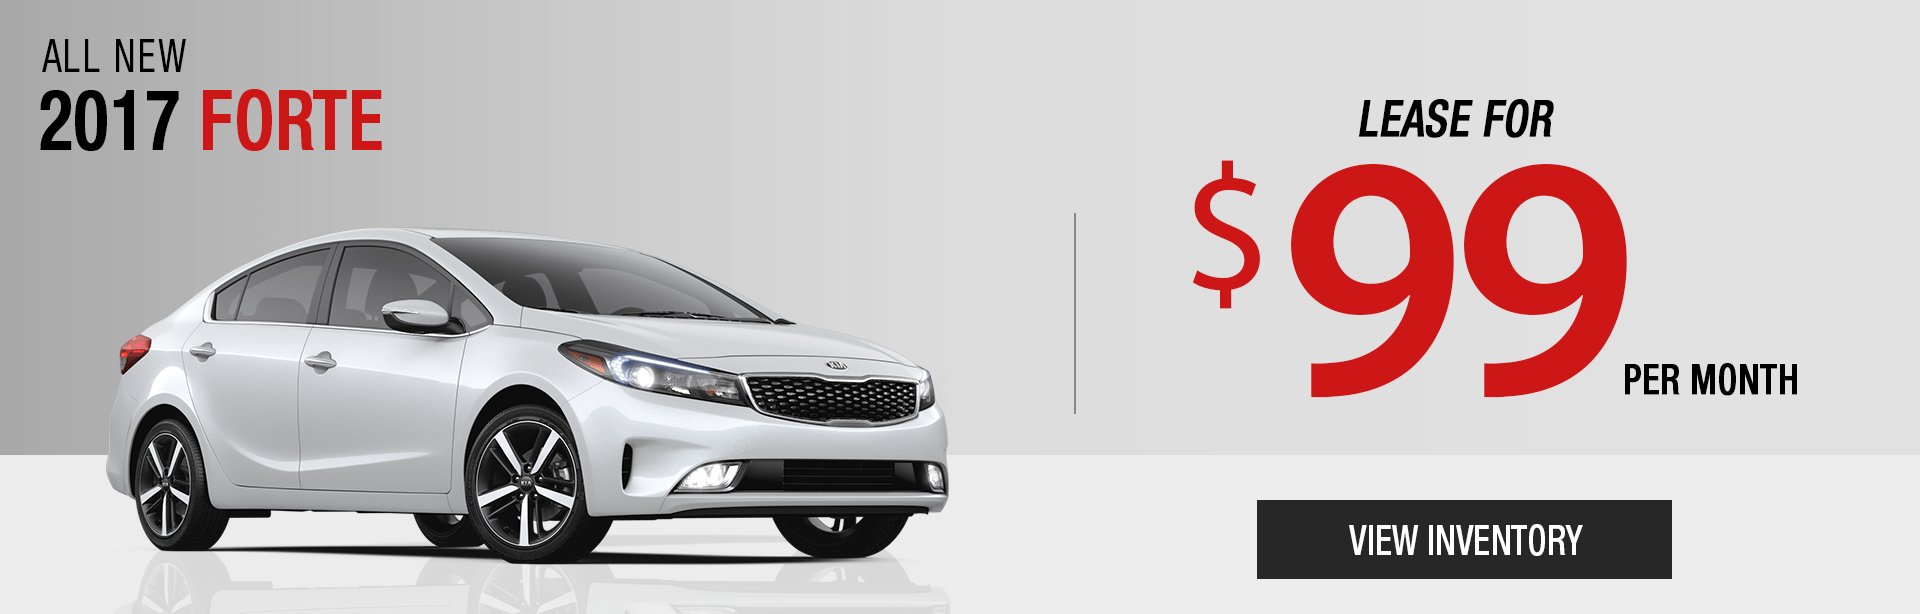 Lease 2017 Forte